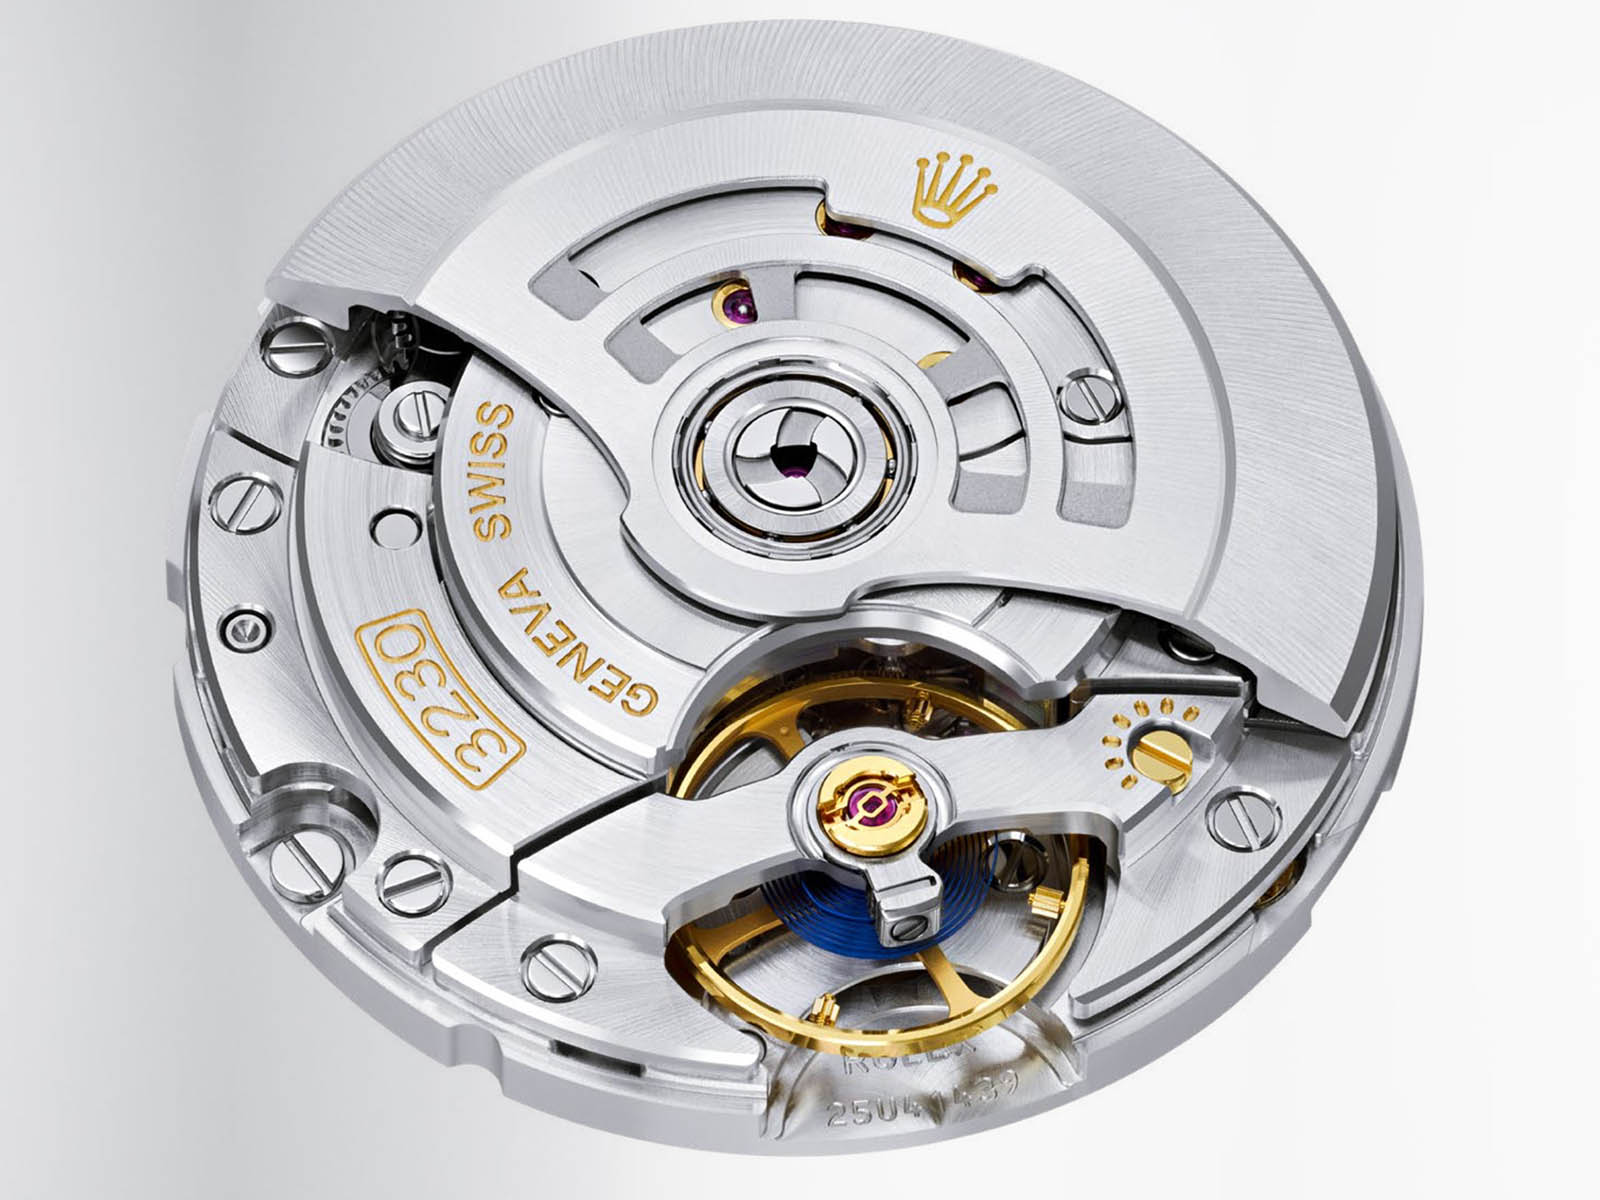 rolex-oyster-perpetual-2020-new-models-2.jpg